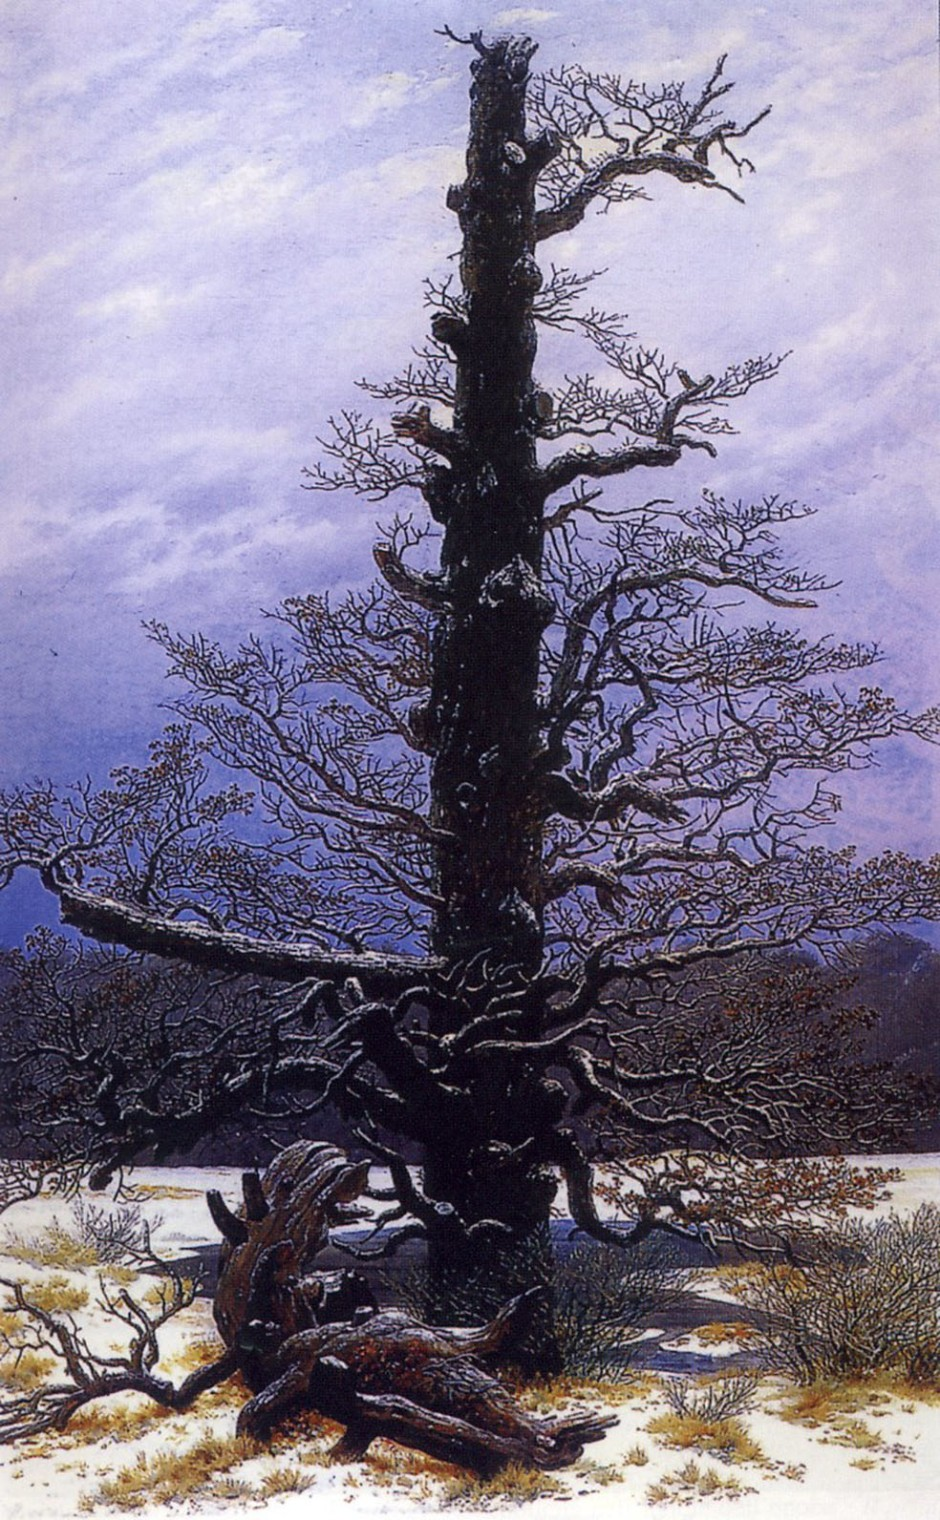 DAVID CASPAR FRIEDRICH-Querce nella neve